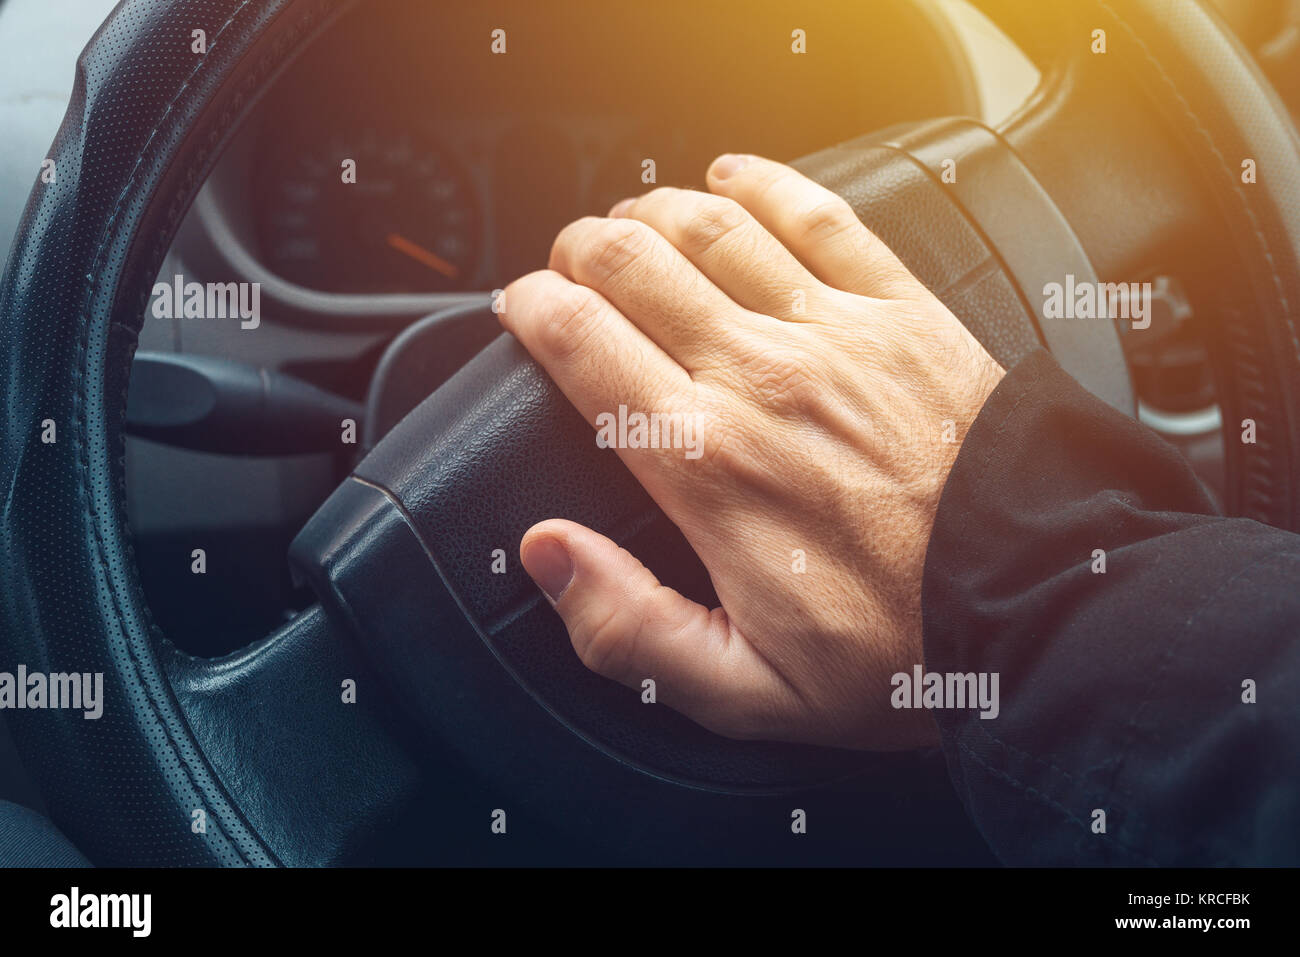 Male hand honking the car horn, man driving vehicle and beeping - Stock Image